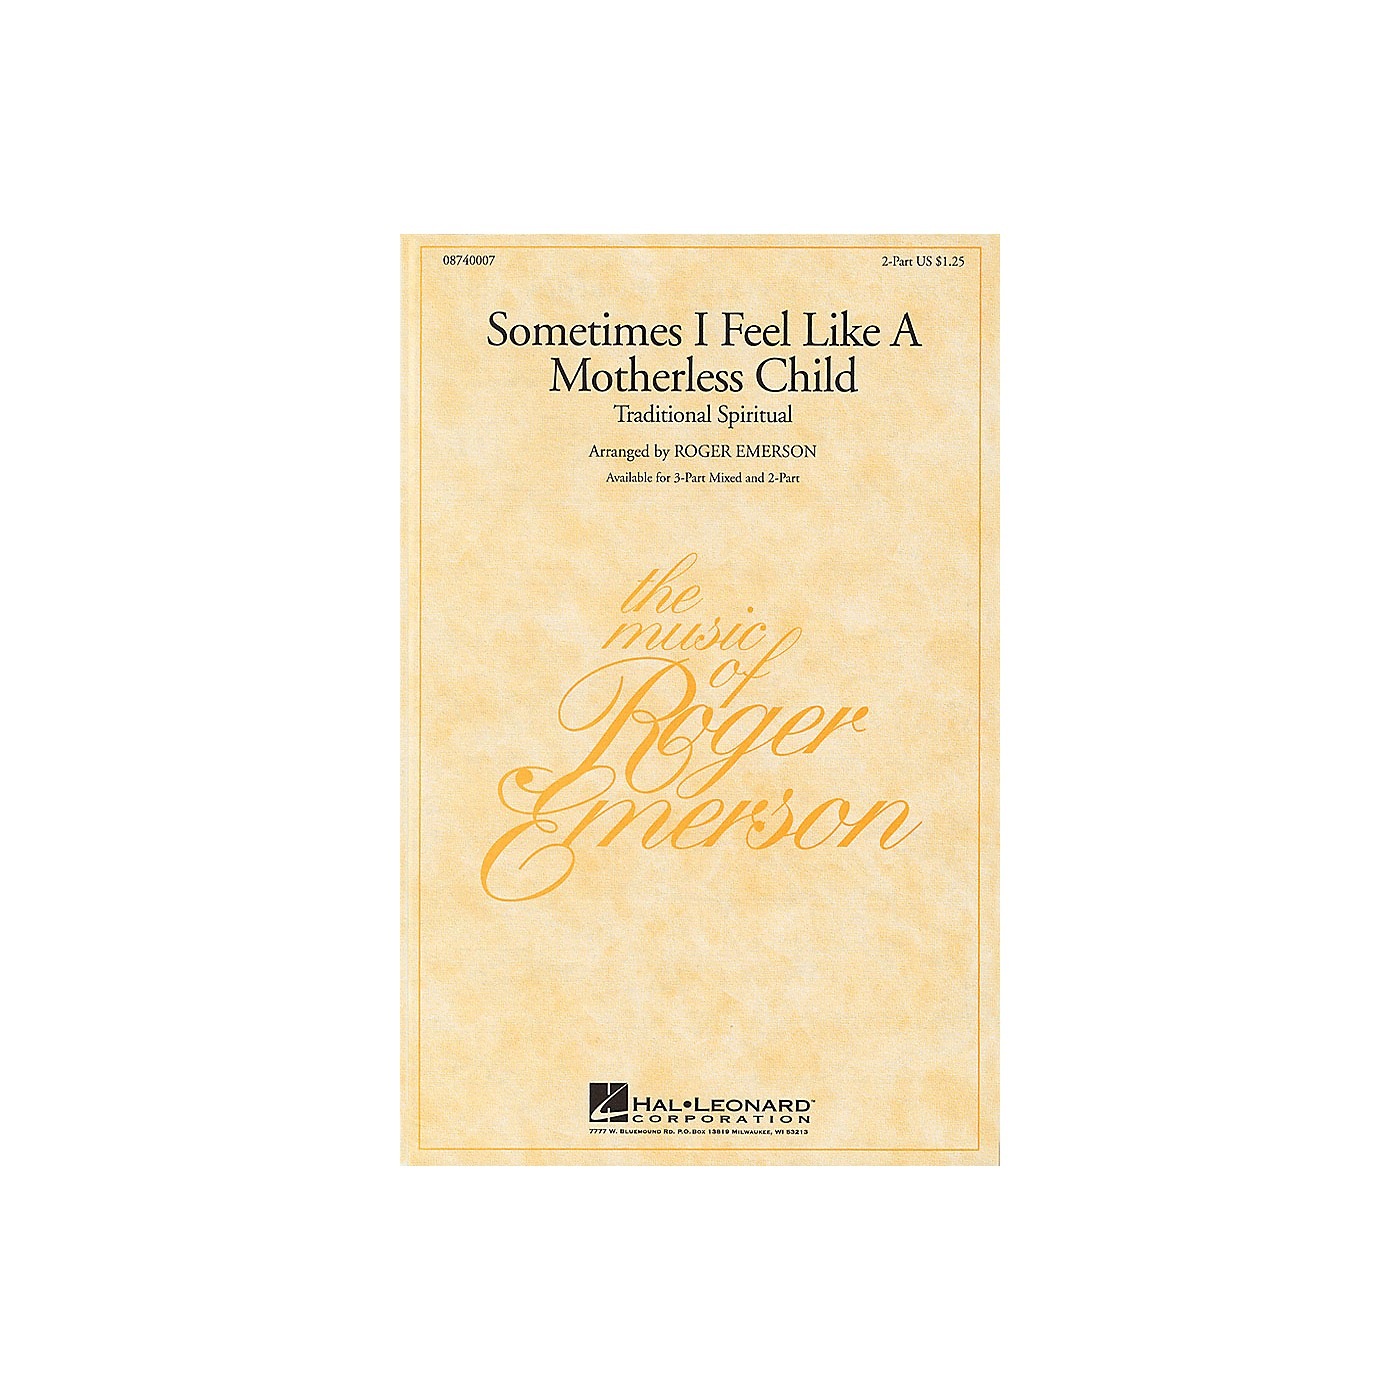 Hal Leonard Sometimes I Feel Like a Motherless Child 3-Part Mixed Arranged by Roger Emerson thumbnail